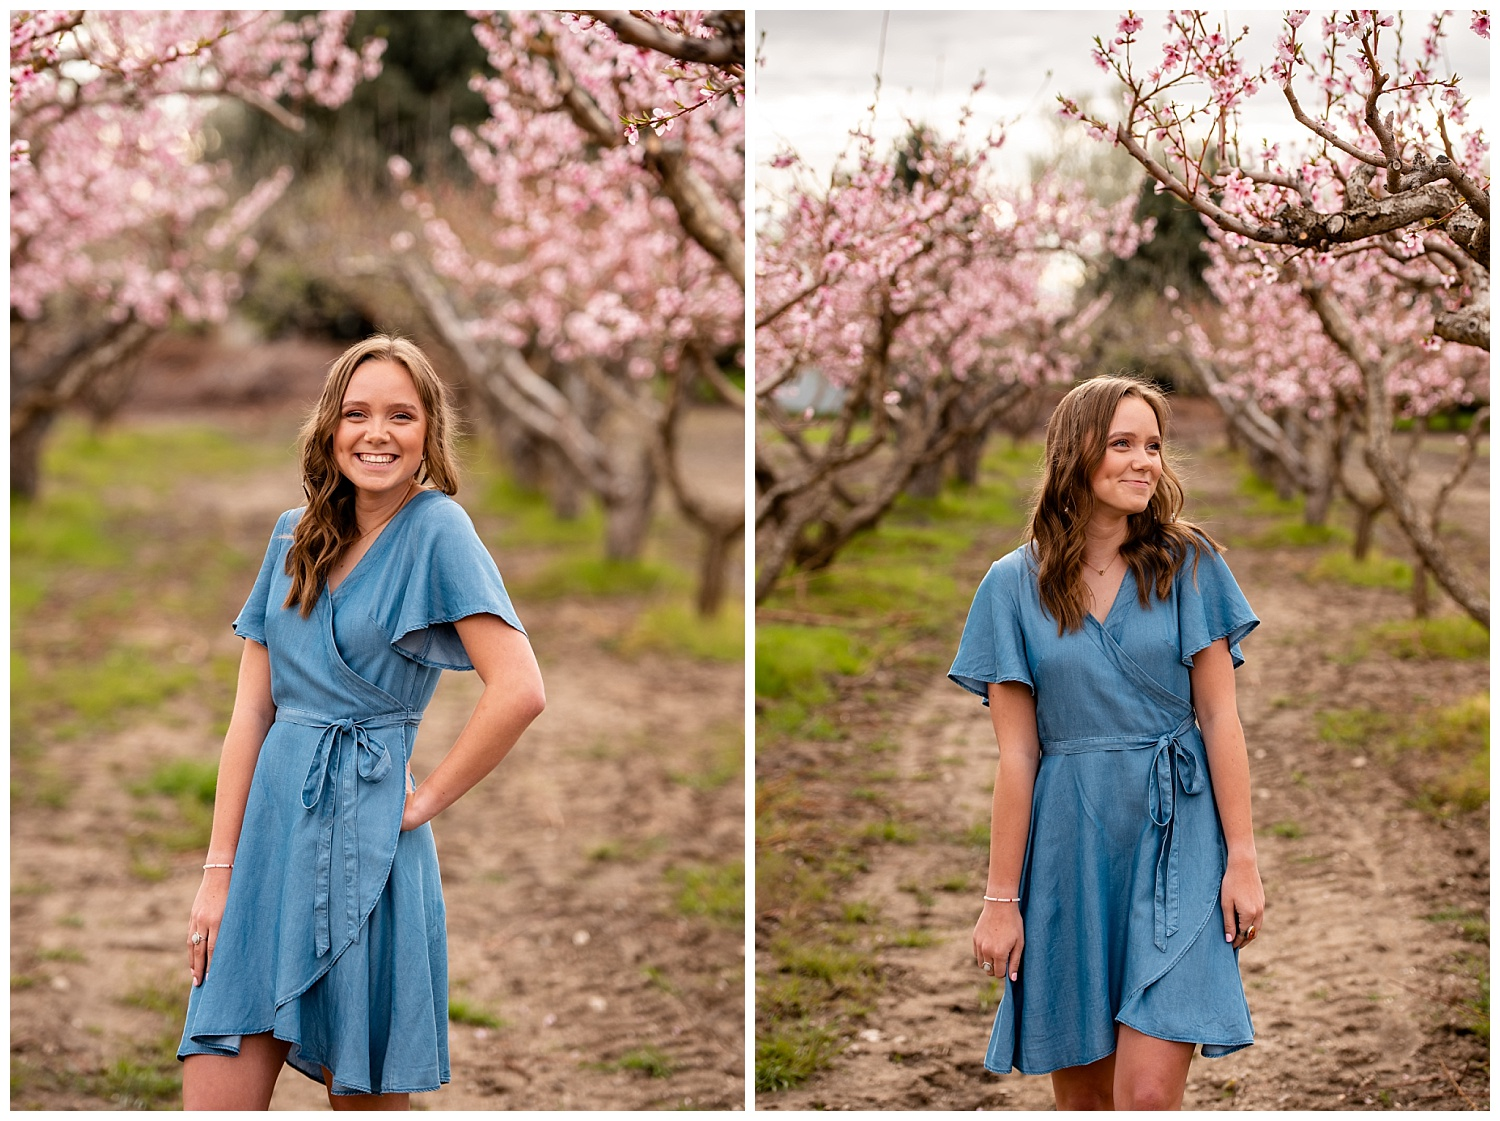 Utah Senior Photographer, Dan Page Photography, Tunnel Springs North Salt Lake Senior Portraits (3).jpg